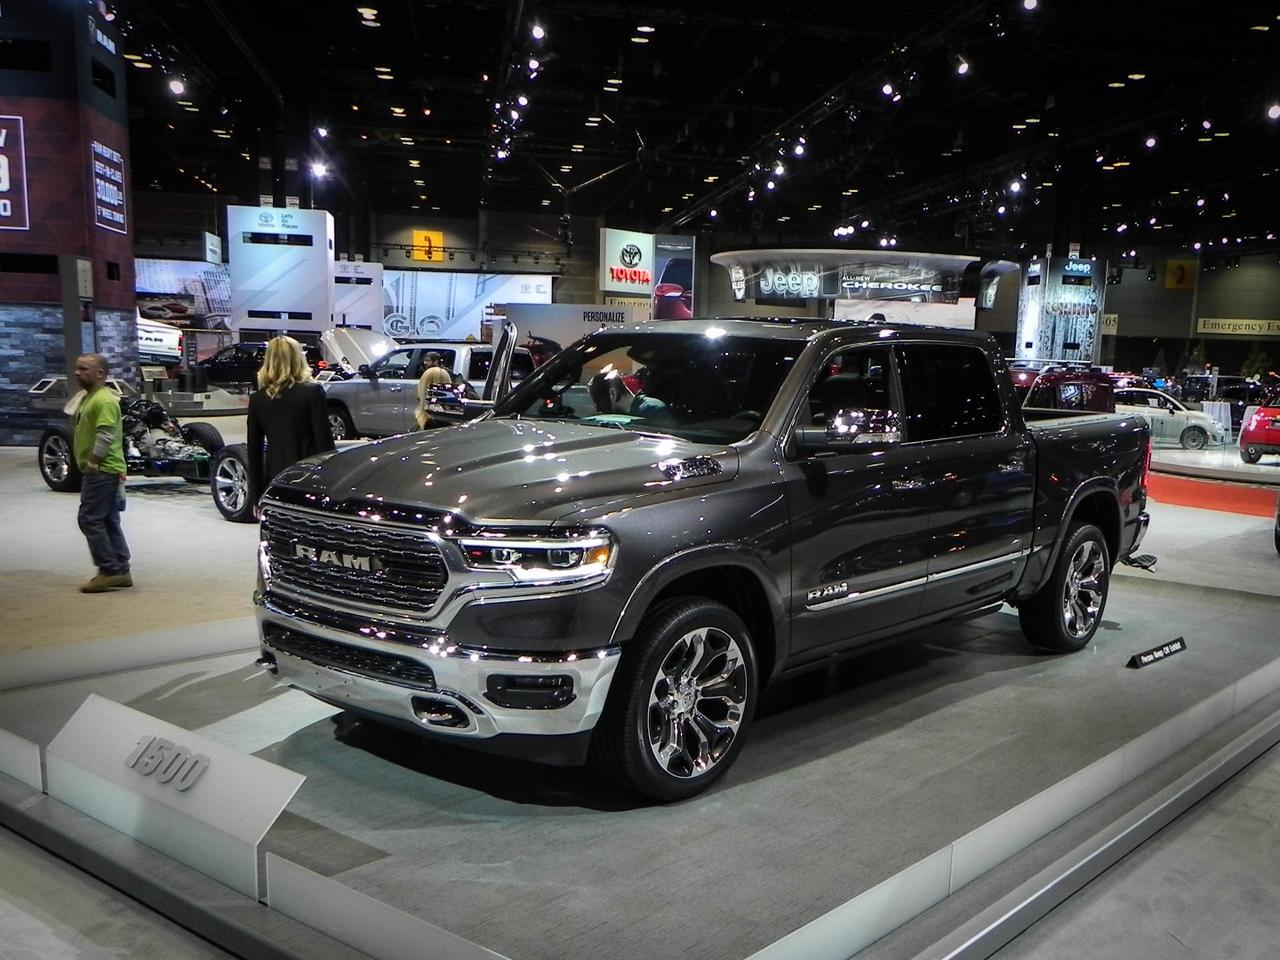 The 2019 Ram 1500, which debuted in Detroit just before the Chicago Auto Show, is completely new from the ground up